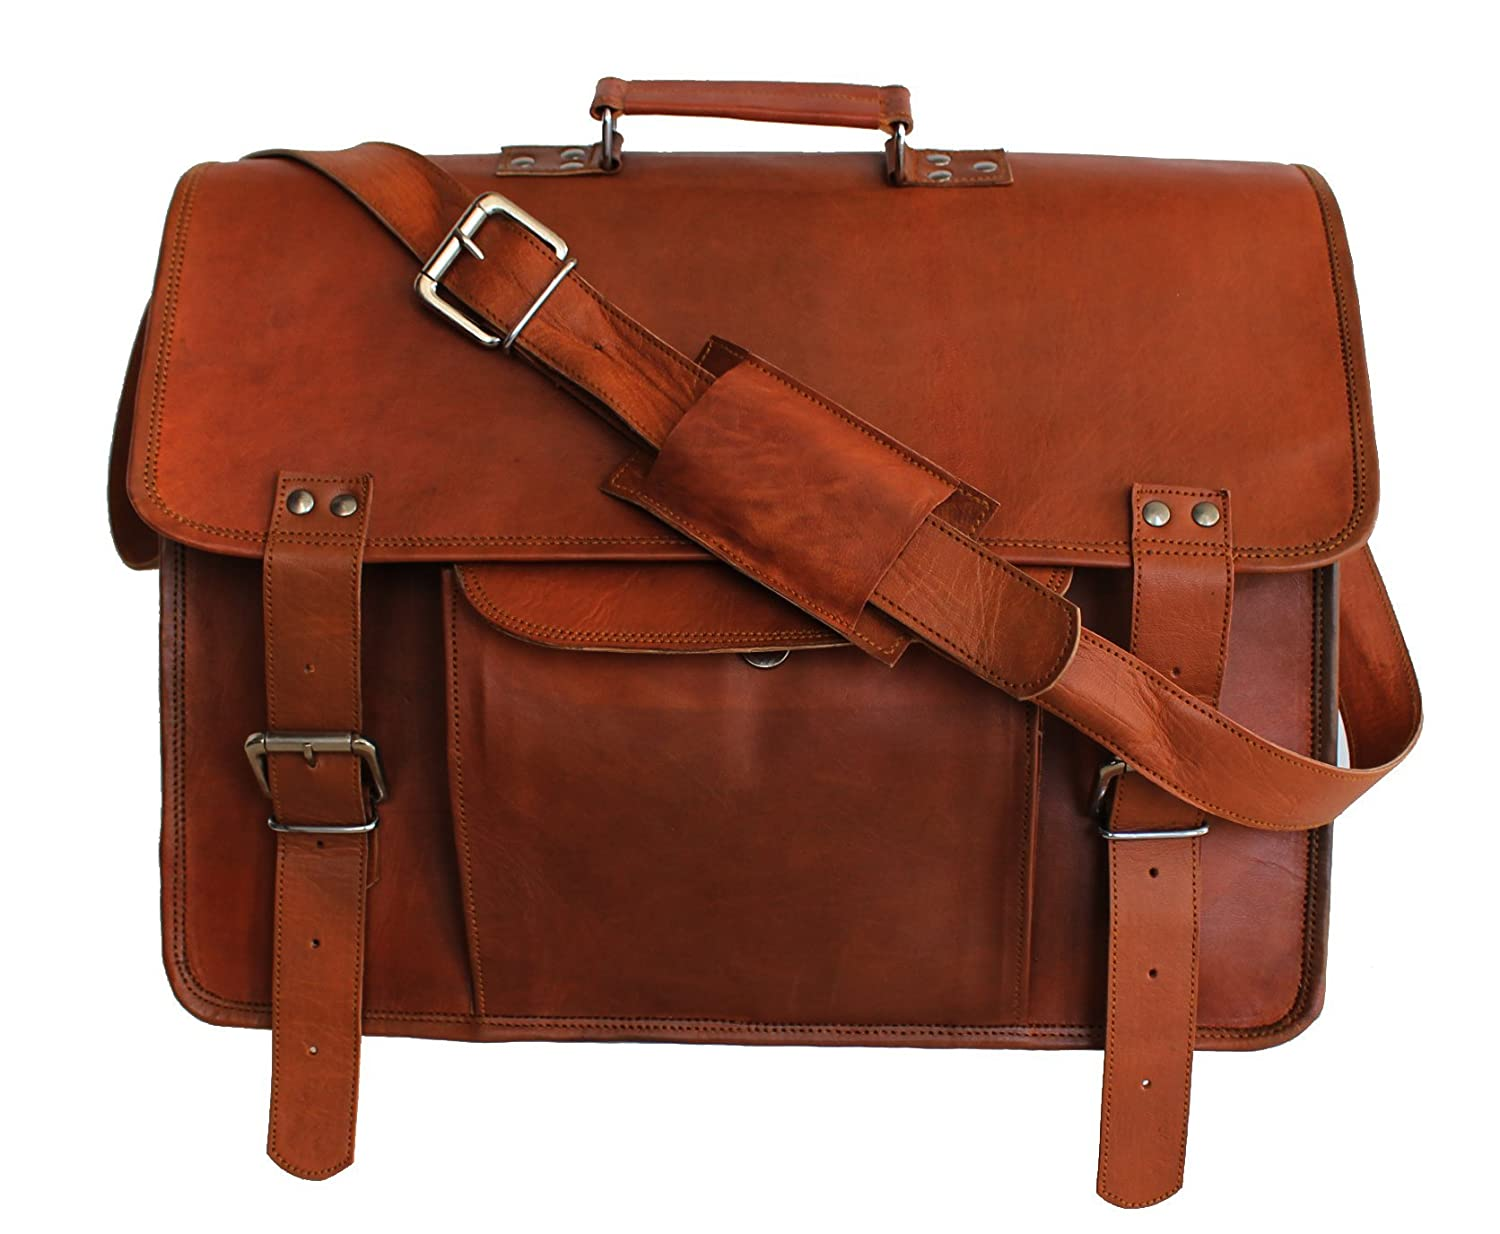 hlc 18 Inch Leather Laptop Messenger Bag Office Briefcase College Bag Leather Bag for Men and Women